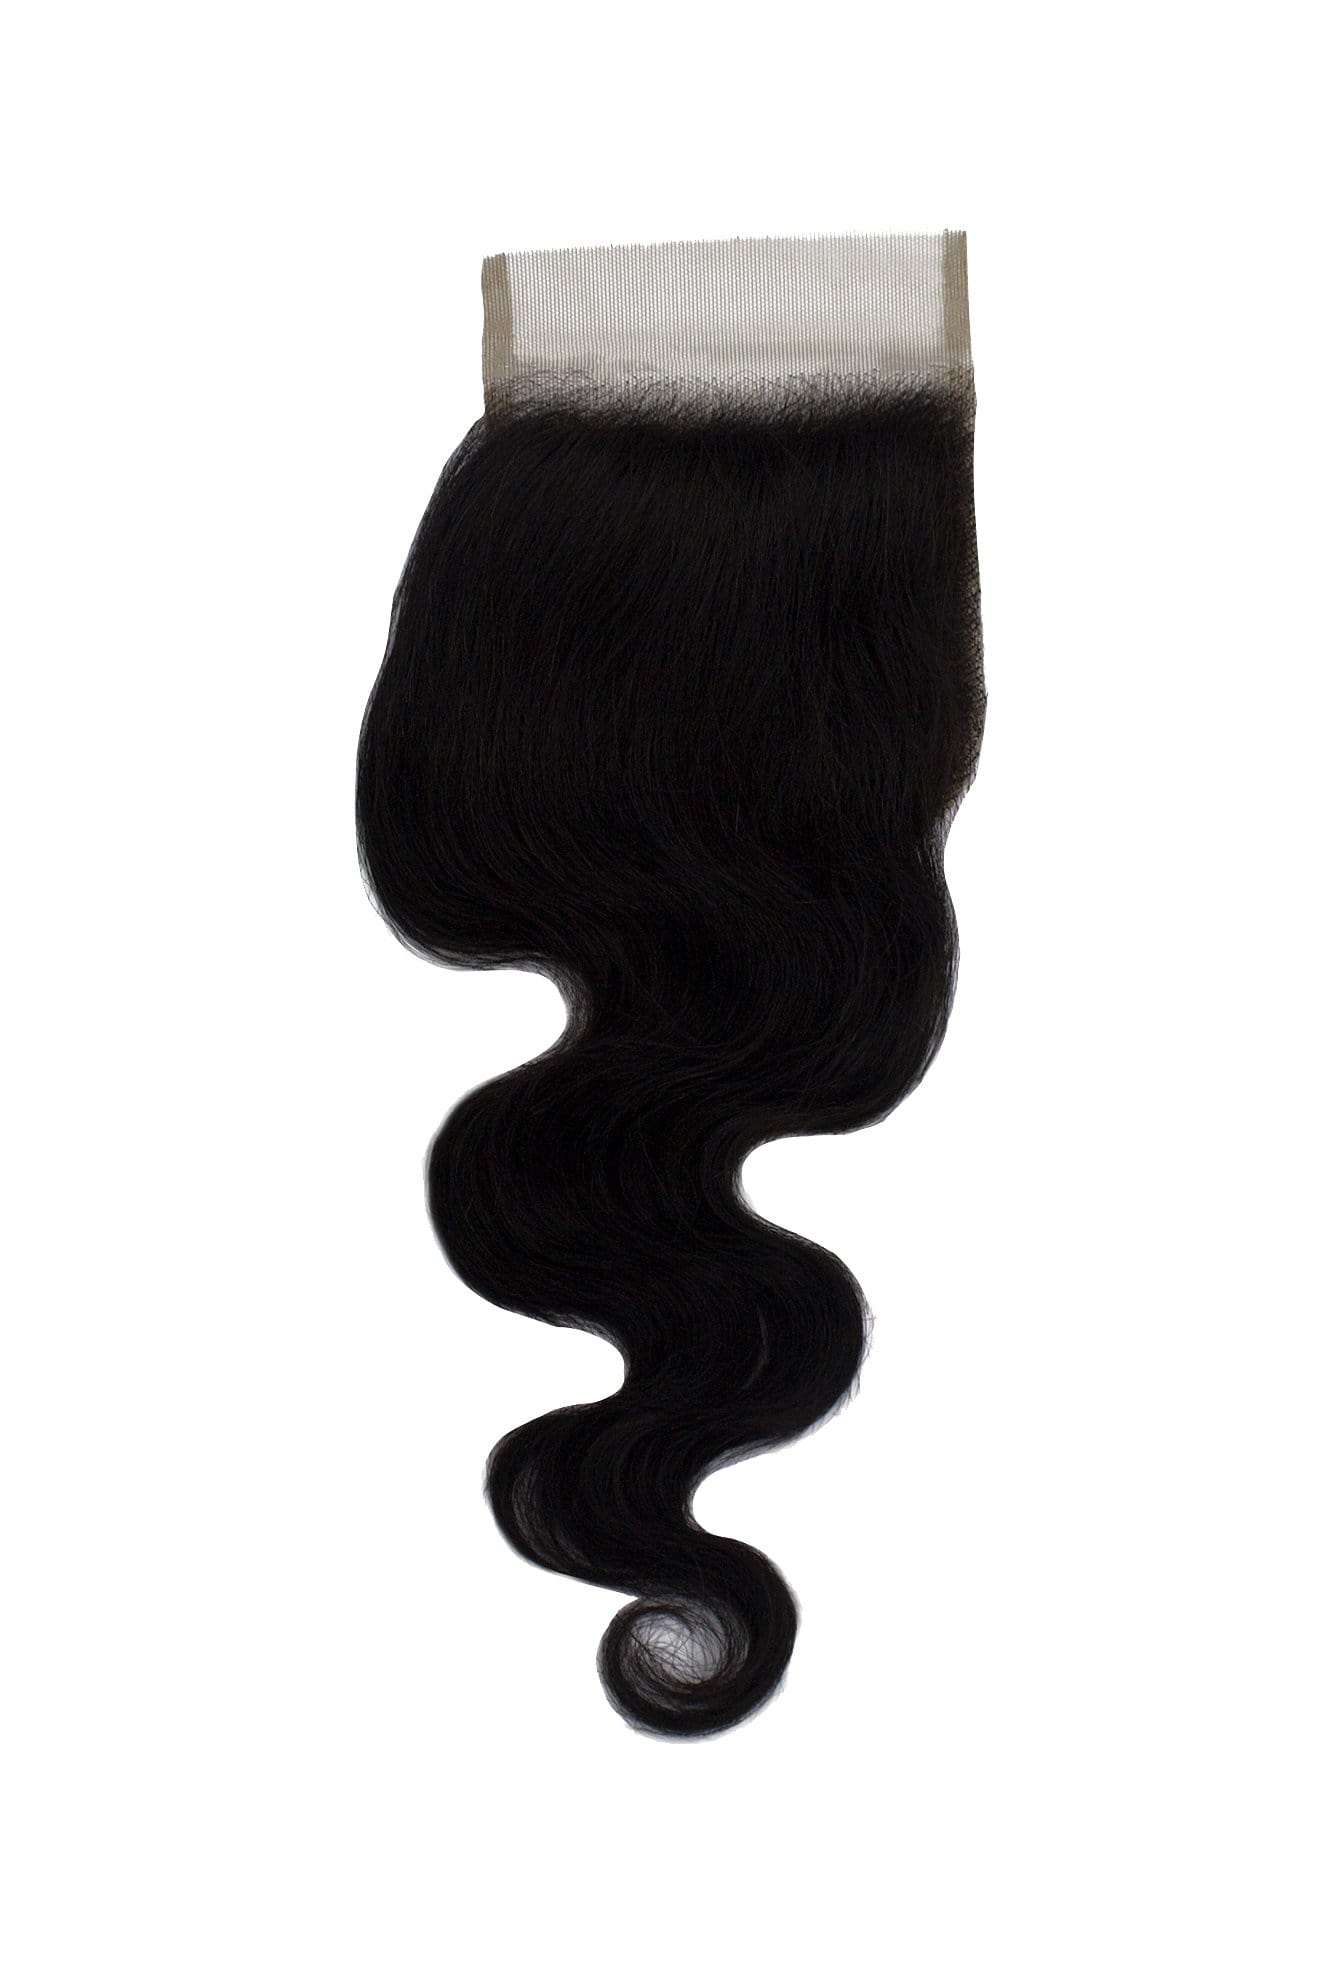 Peruvian Closure Professional Closure - Body Wave